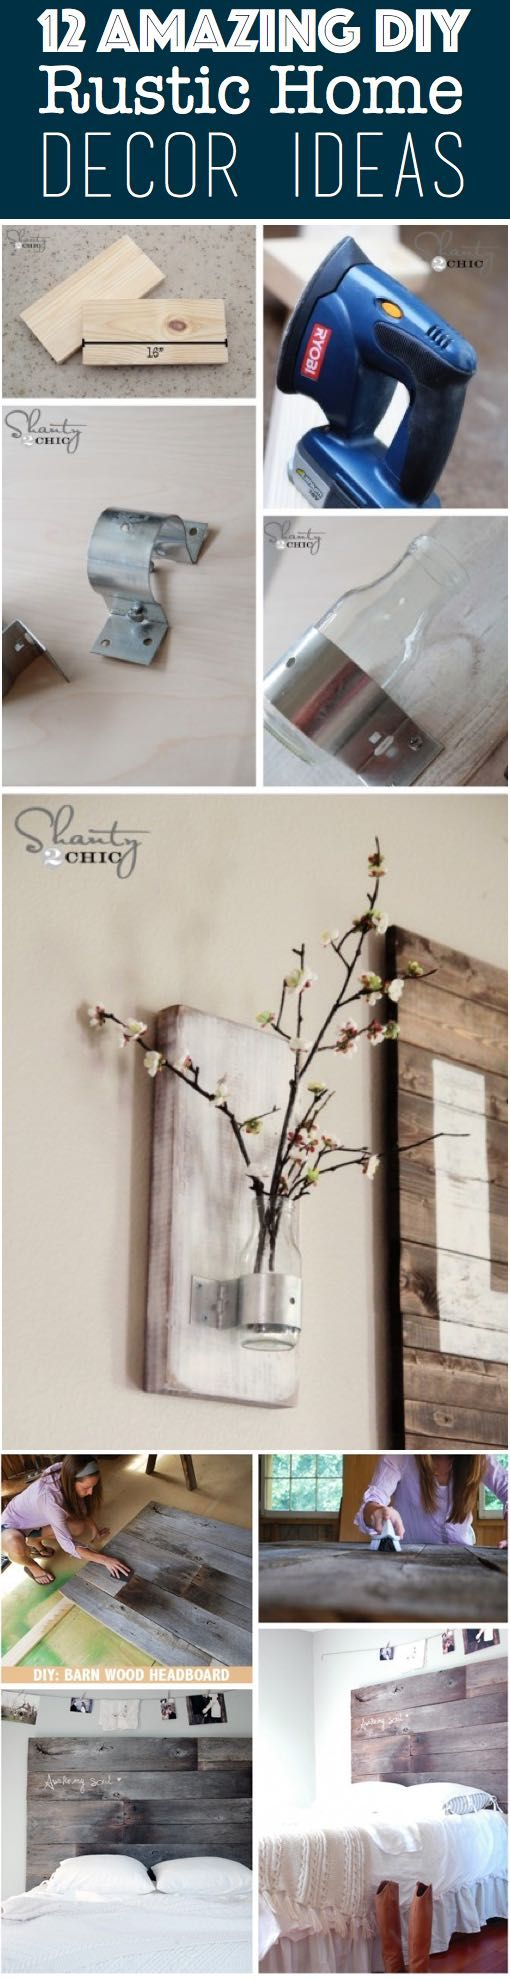 381 best vintage rustic country home decorating ideas images on 12 amazing diy rustic home decor ideas